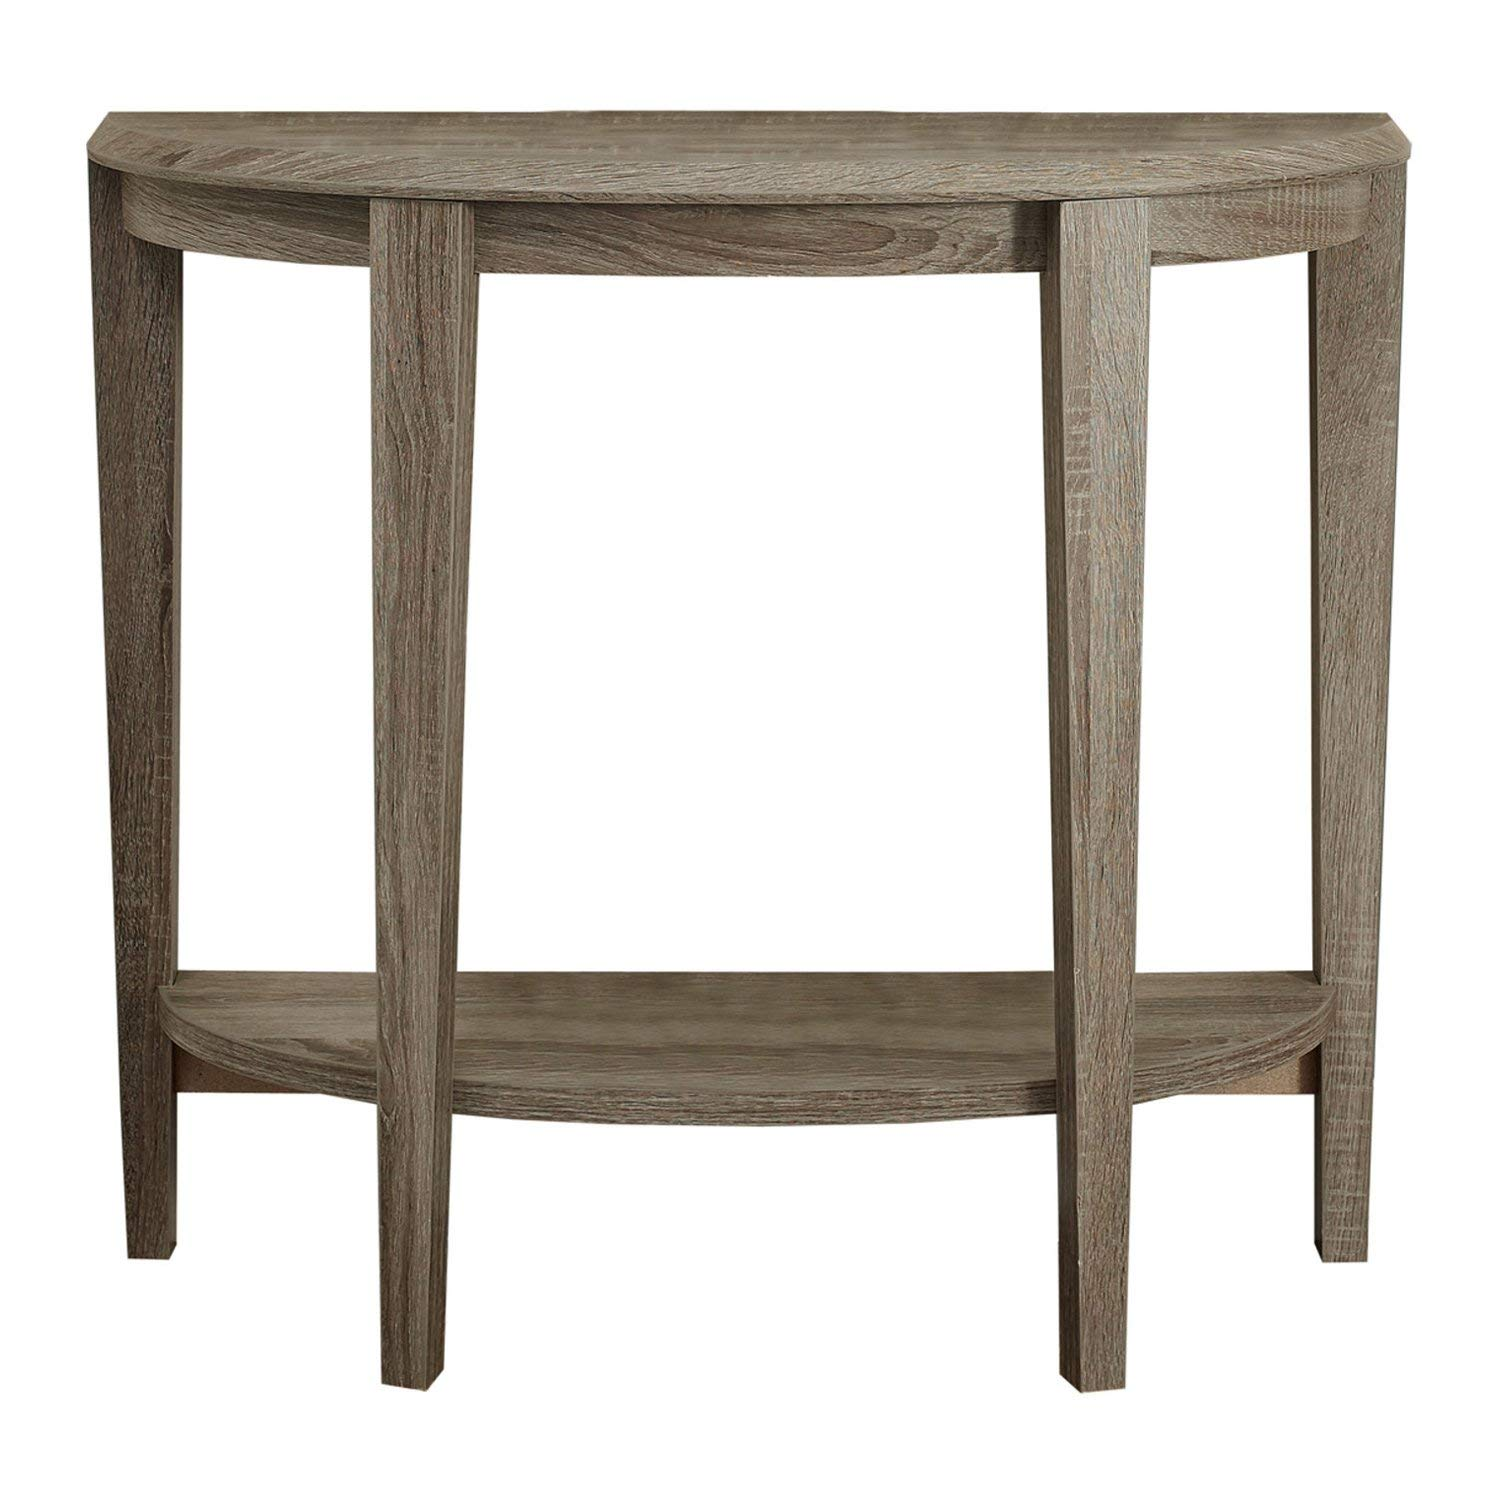 monarch specialties dark taupe reclaimed look console top accent side table cappuccino marble inch kitchen dining coffee cherry wood bedroom furniture large round cover decorative